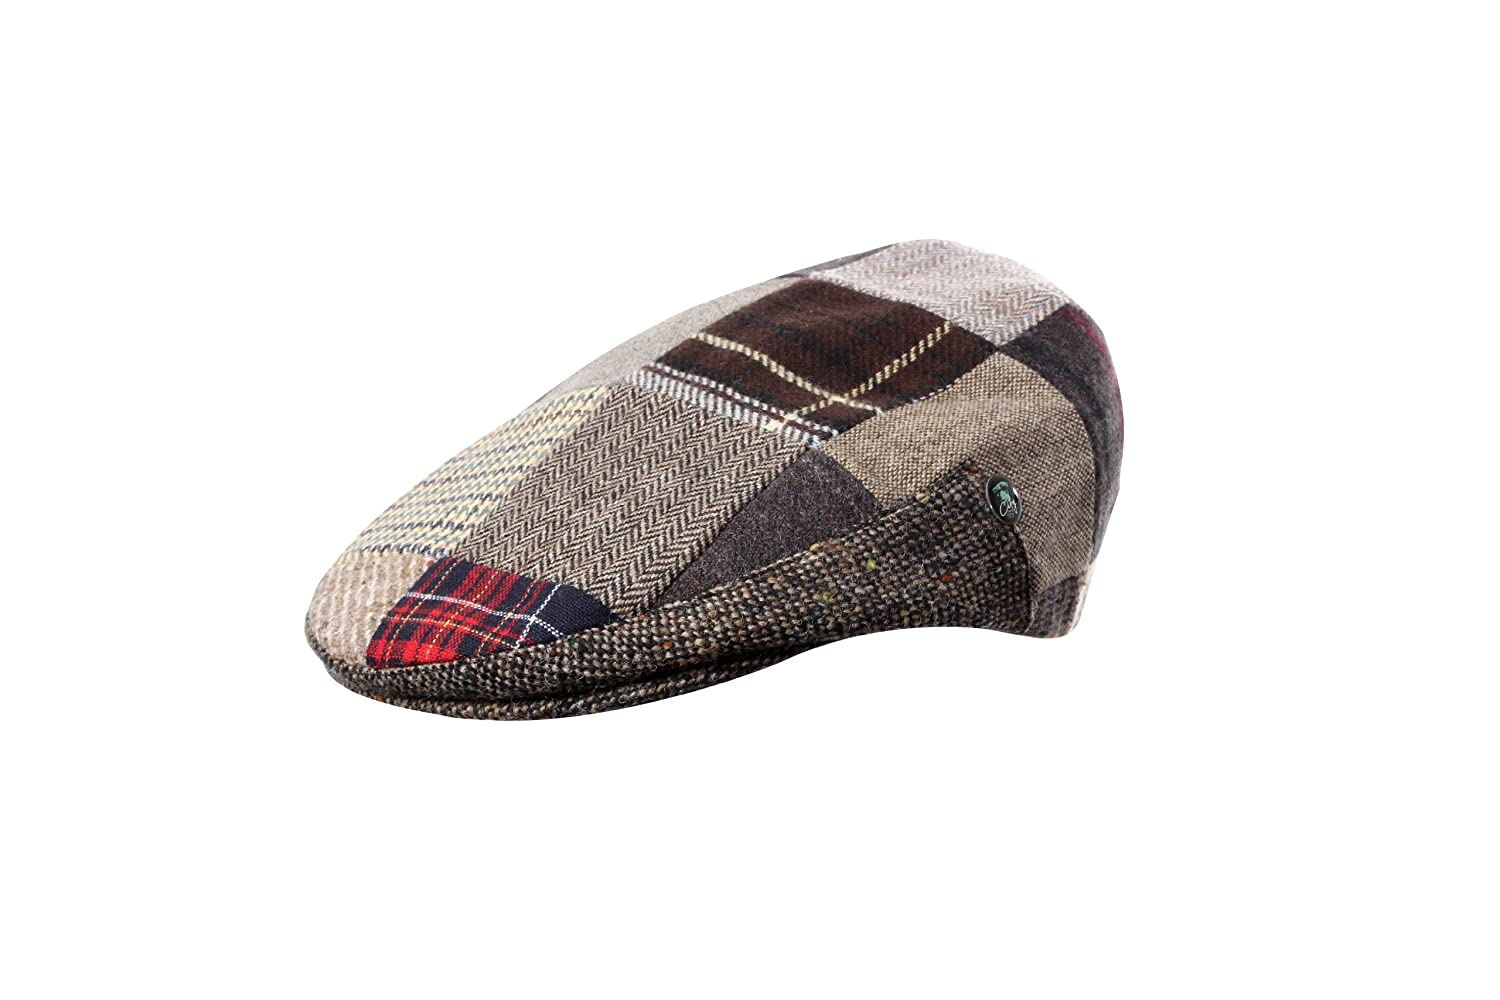 deb956d1cef4b Donegal Tweed - Patch Flat Cap: Amazon.co.uk: Clothing